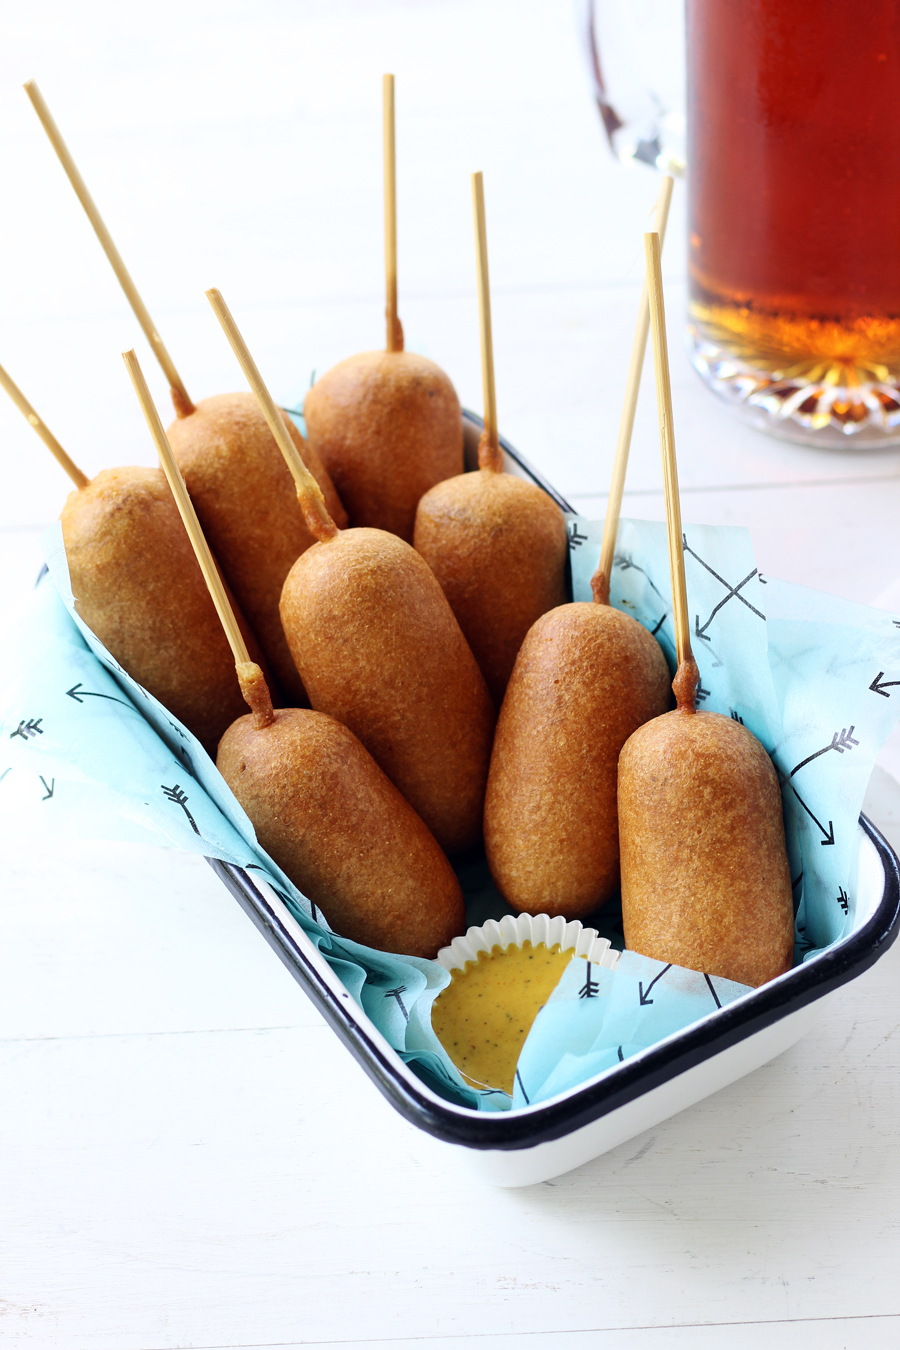 Indulge your summer food cravings with these delicious Beer Battered Bratwurst Corn Dogs!This recipe features savory bratwurst sausages dipped in a golden, homemade beer batter then deep-fried to perfection.#corndogs #bratwurst